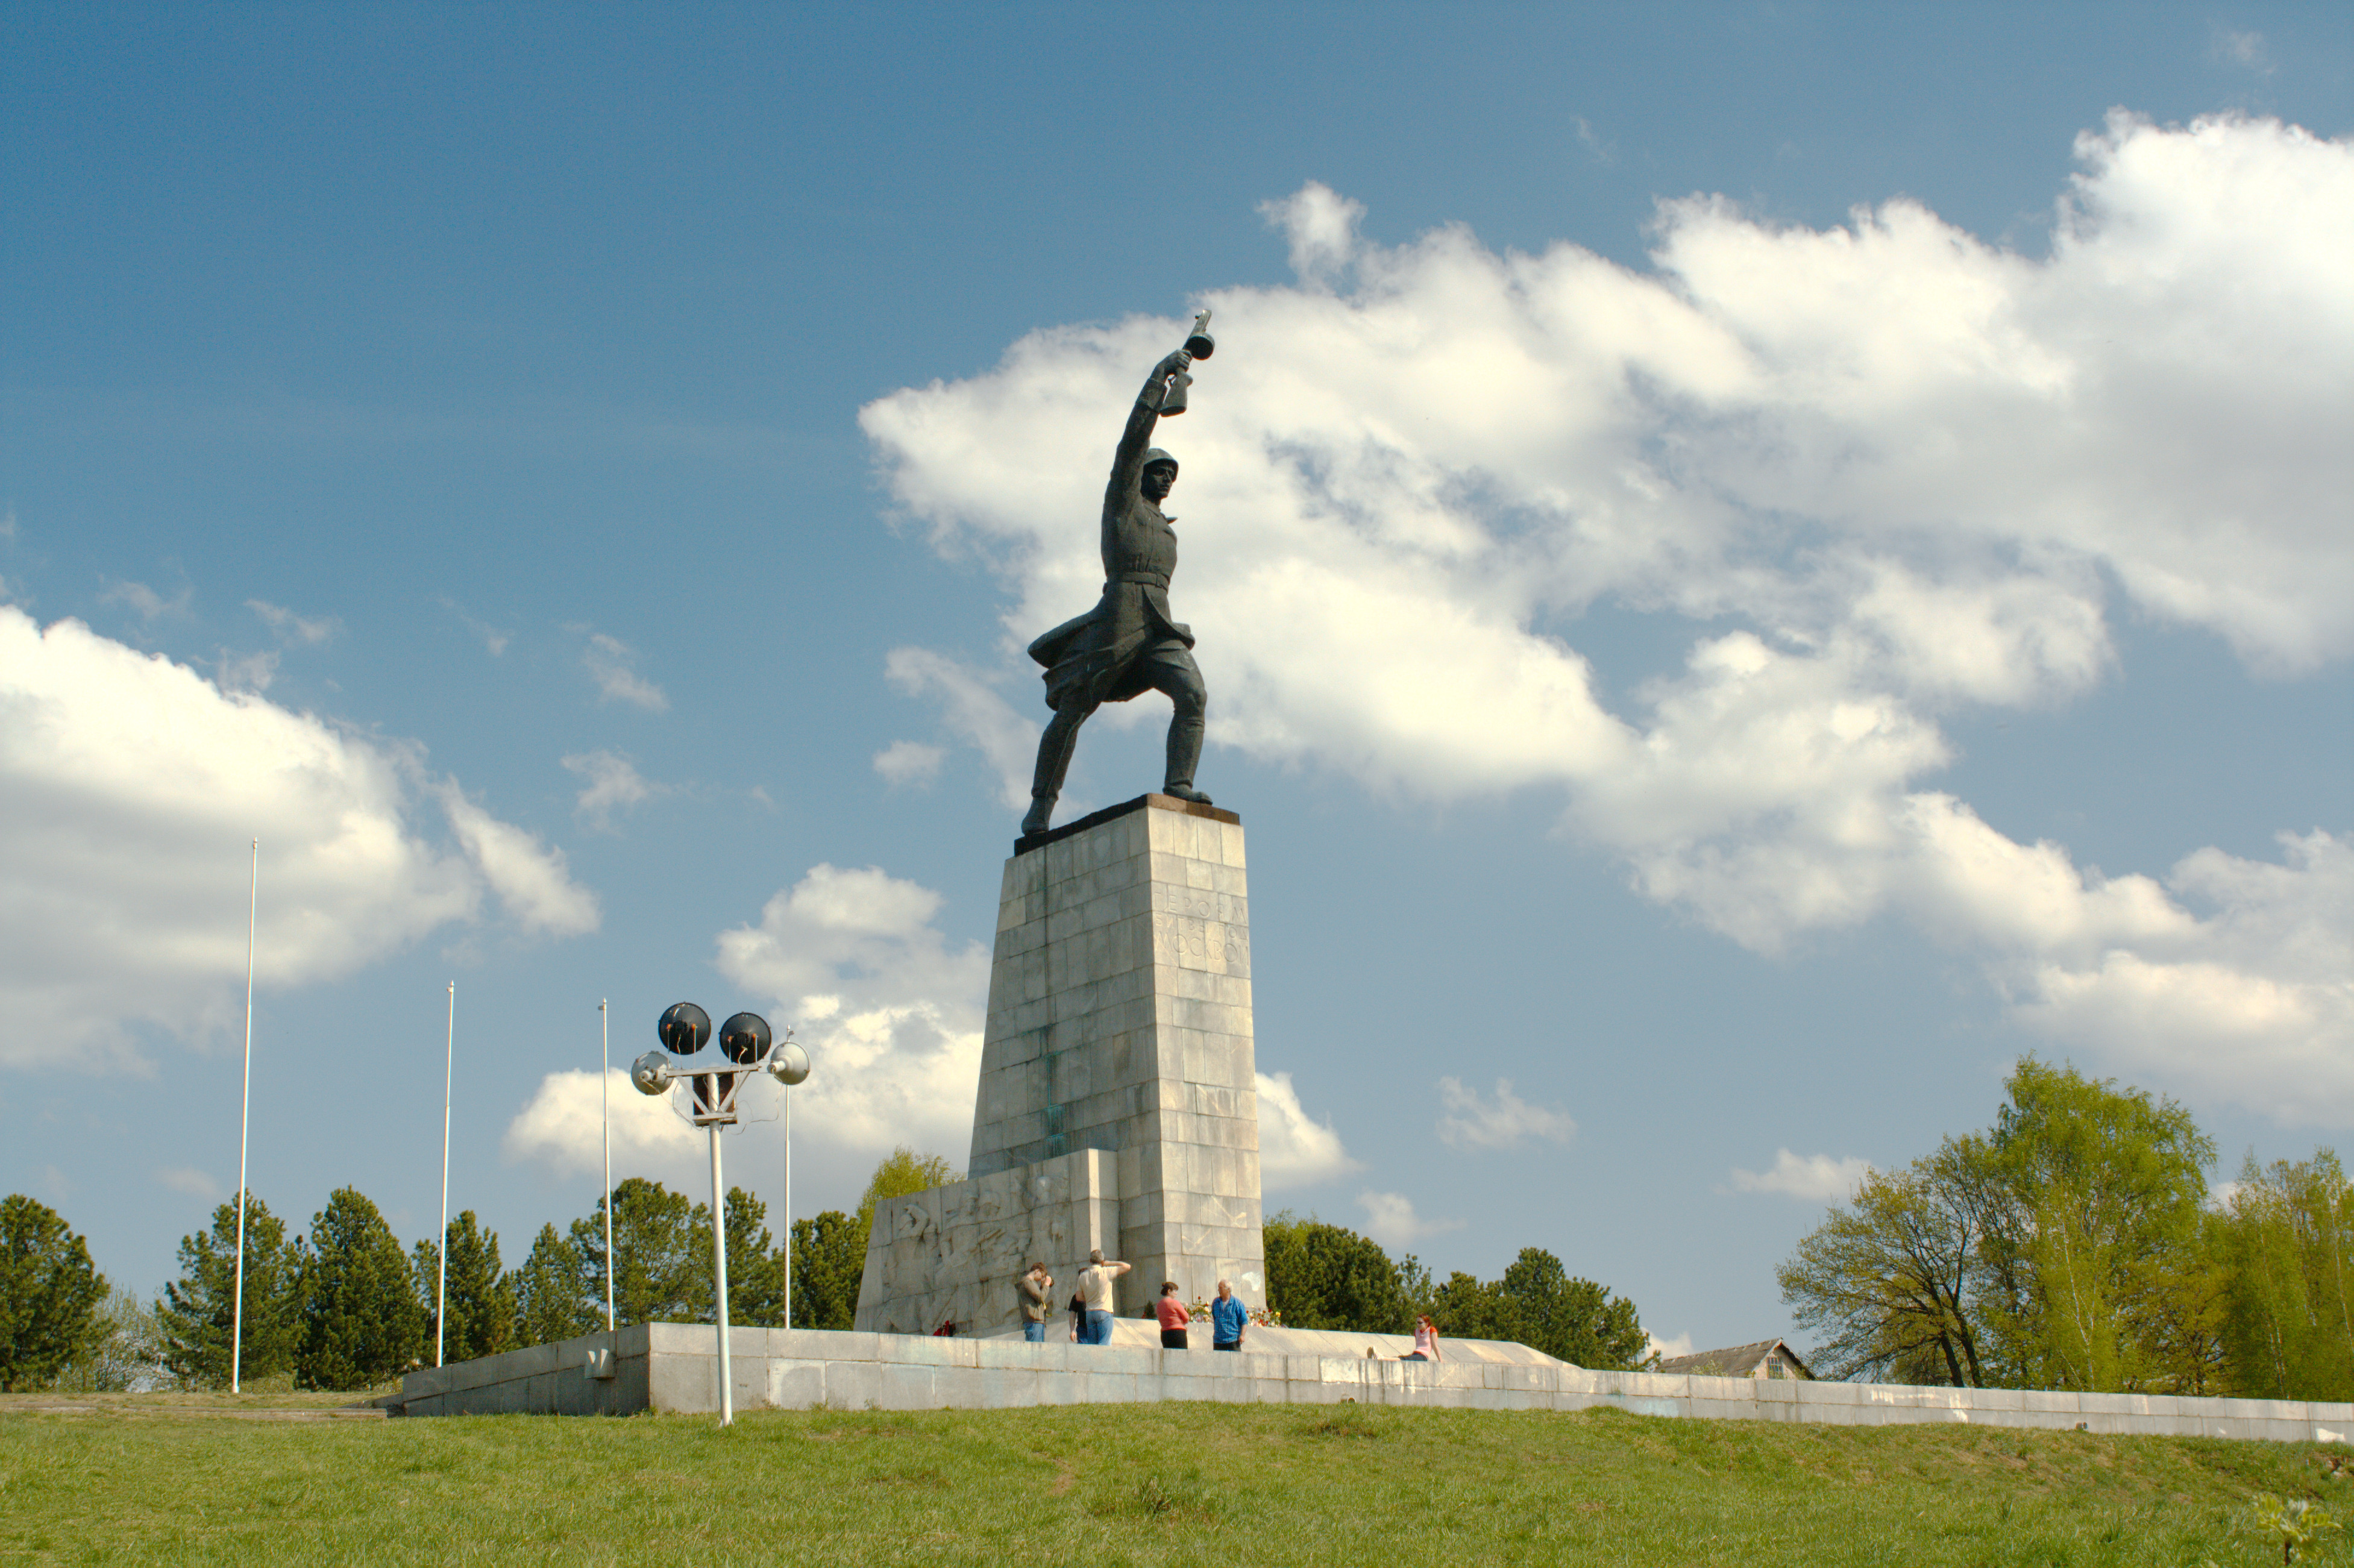 http://upload.wikimedia.org/wikipedia/commons/6/6e/Peremilovo_monument_01.jpg